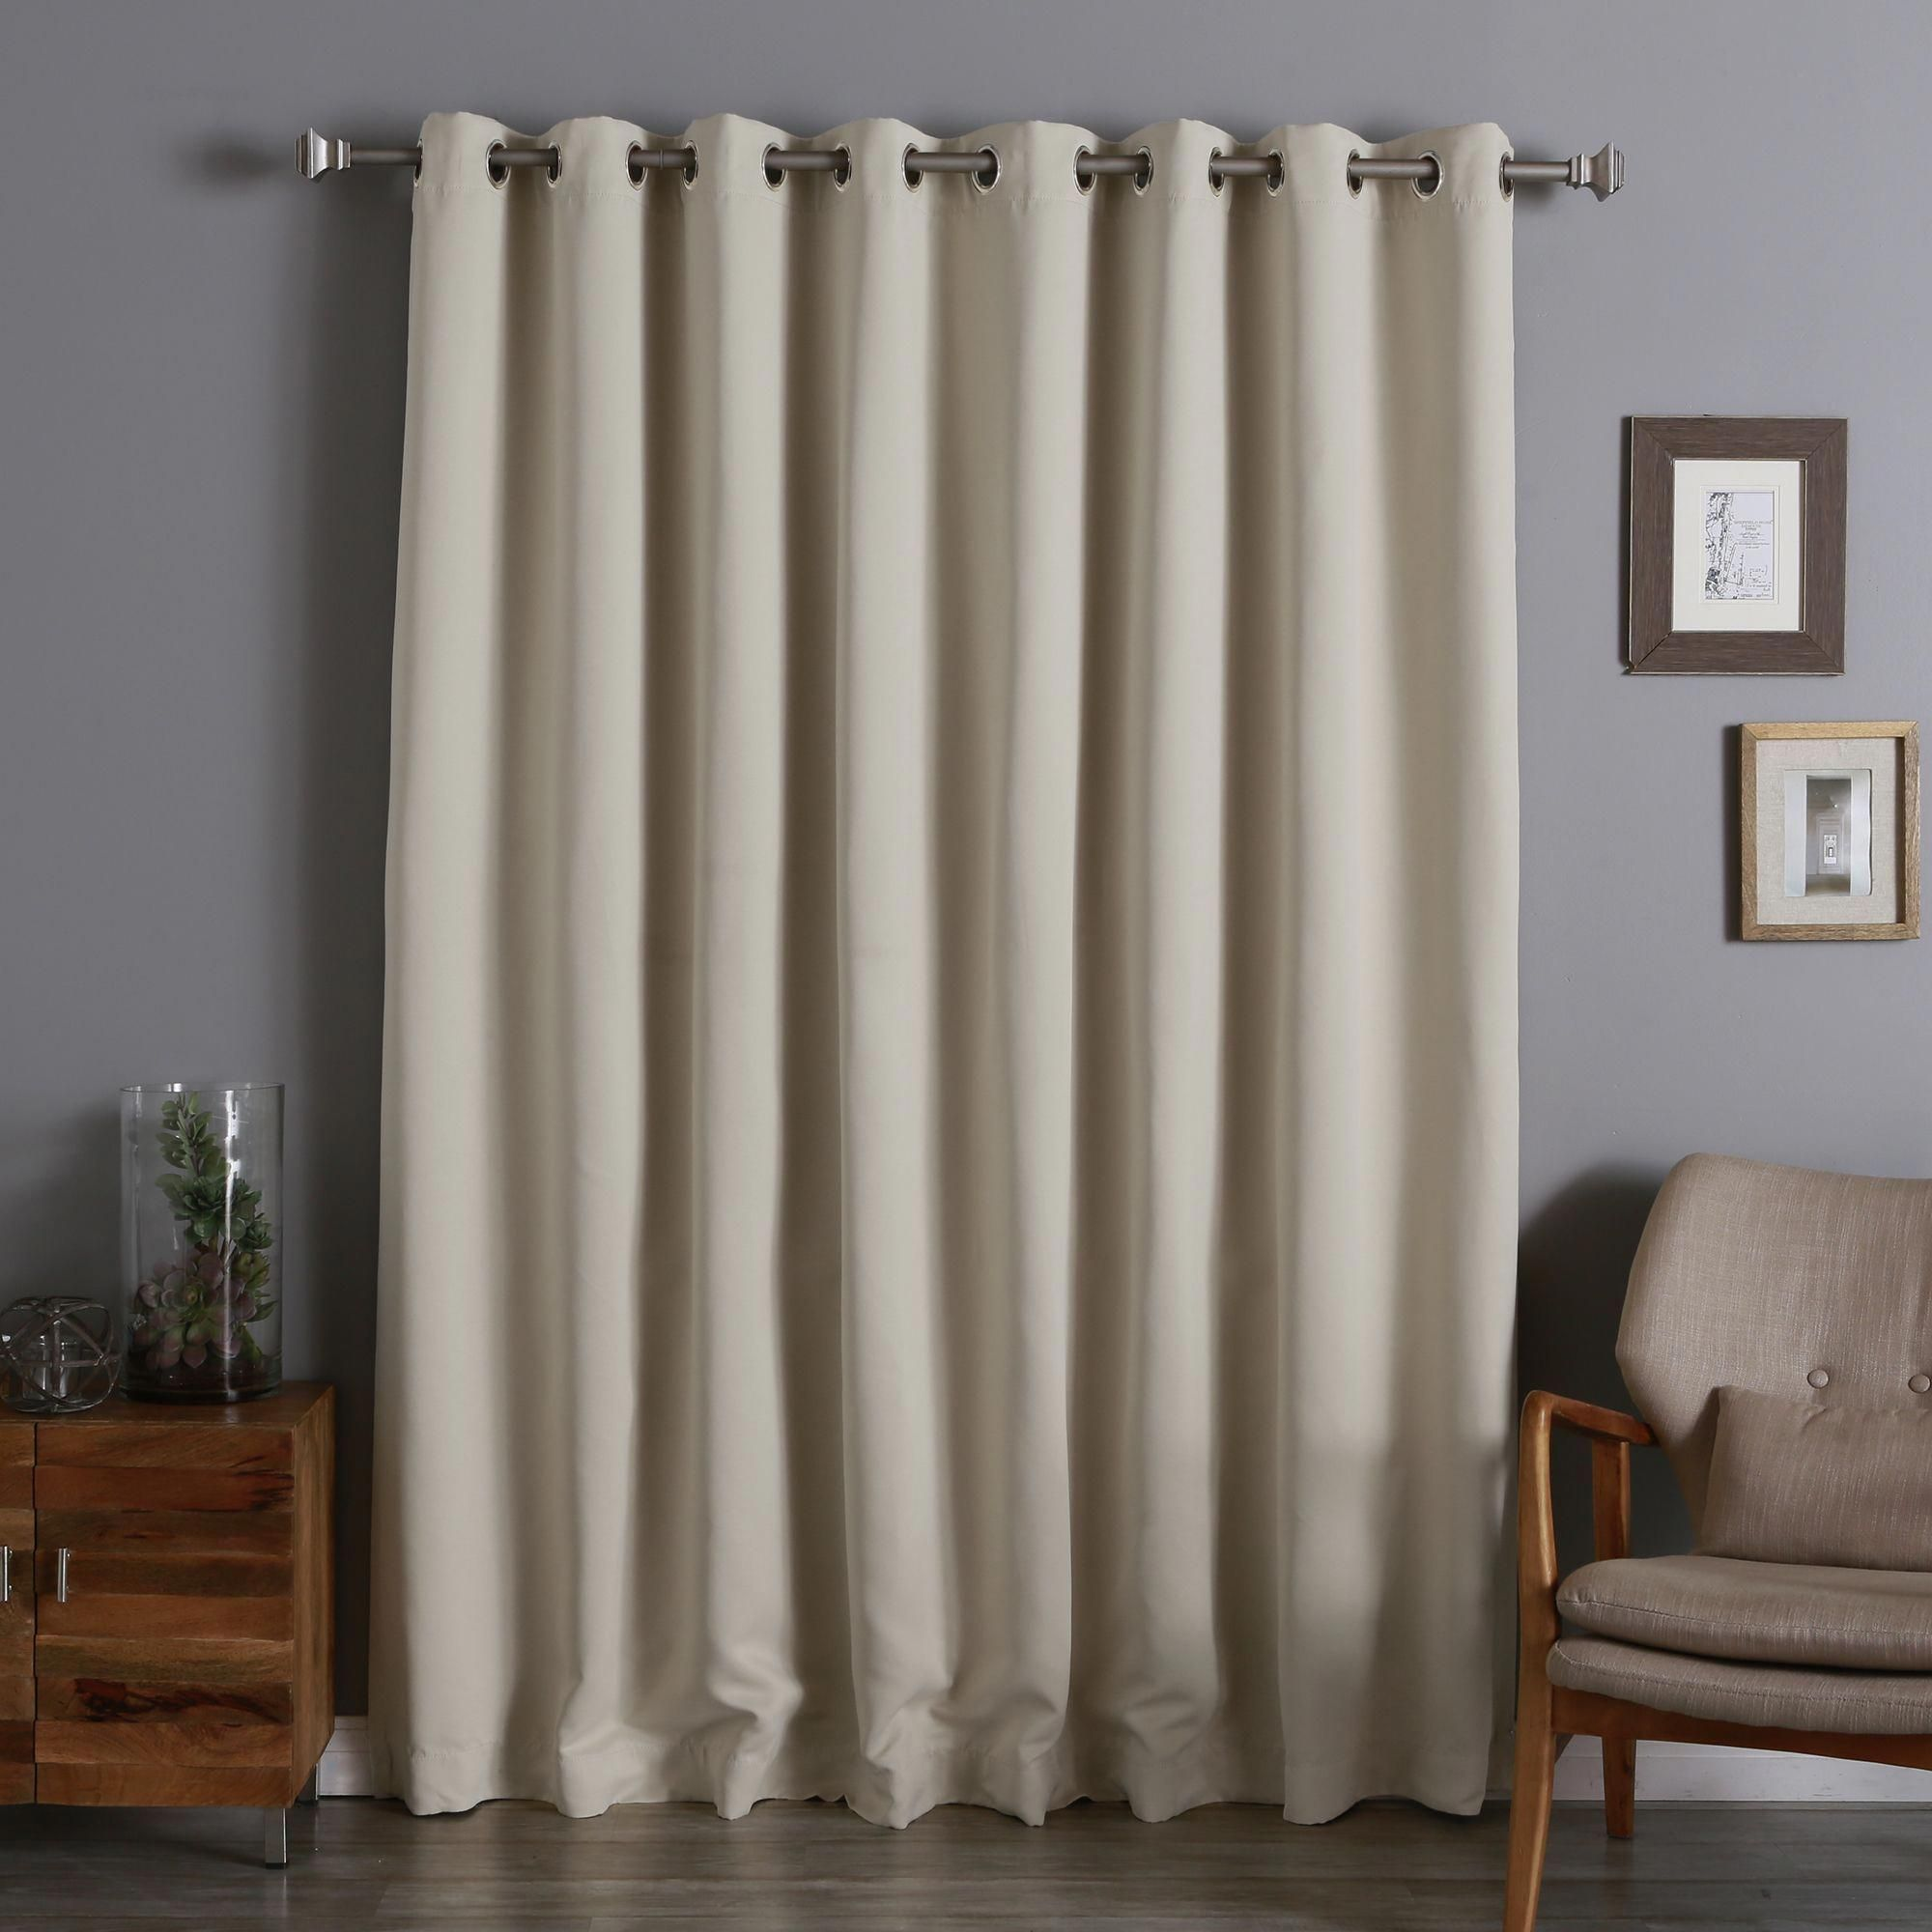 Aurora Home Extra Width Thermal Insulated 96 Inch Blackout Curtain